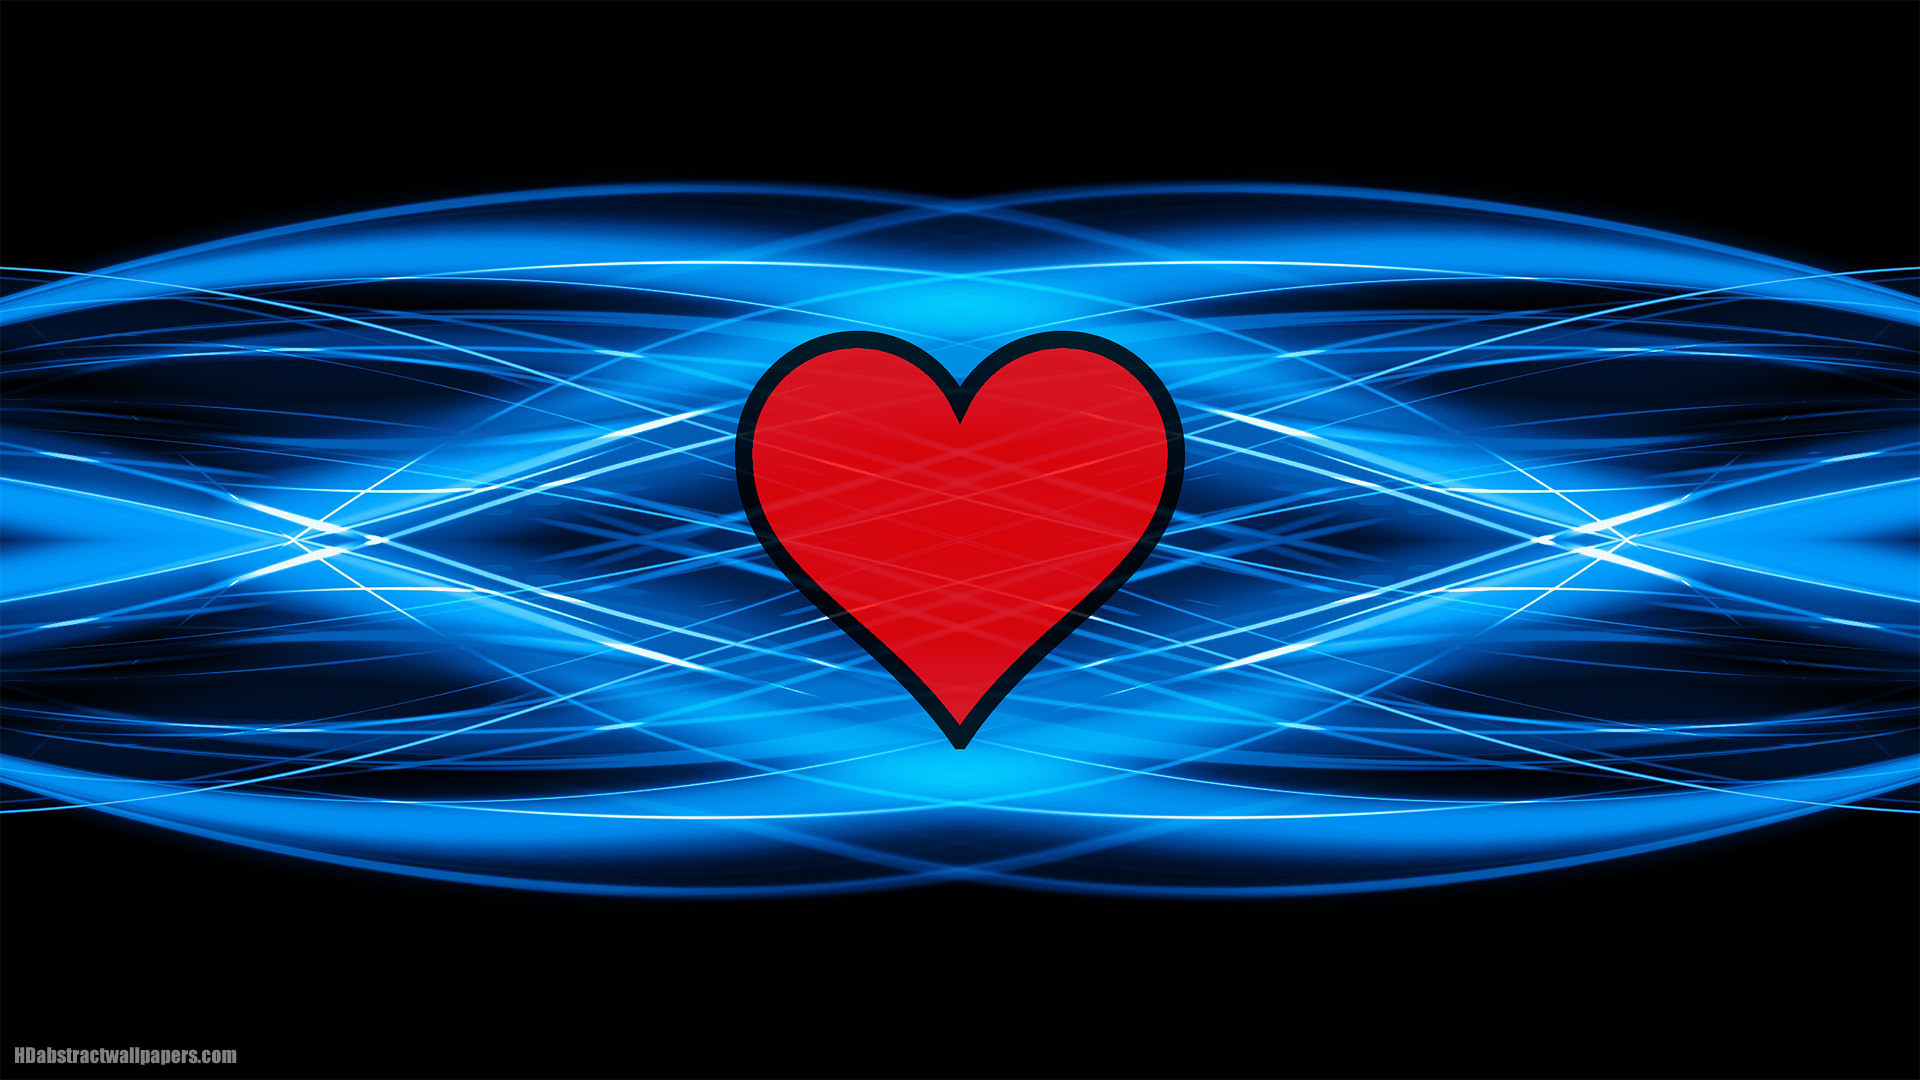 Abstract Wallpaper Black Hearts Blue 3d And Hd Wallpaper: Blue Heart Wallpaper (70+ Images